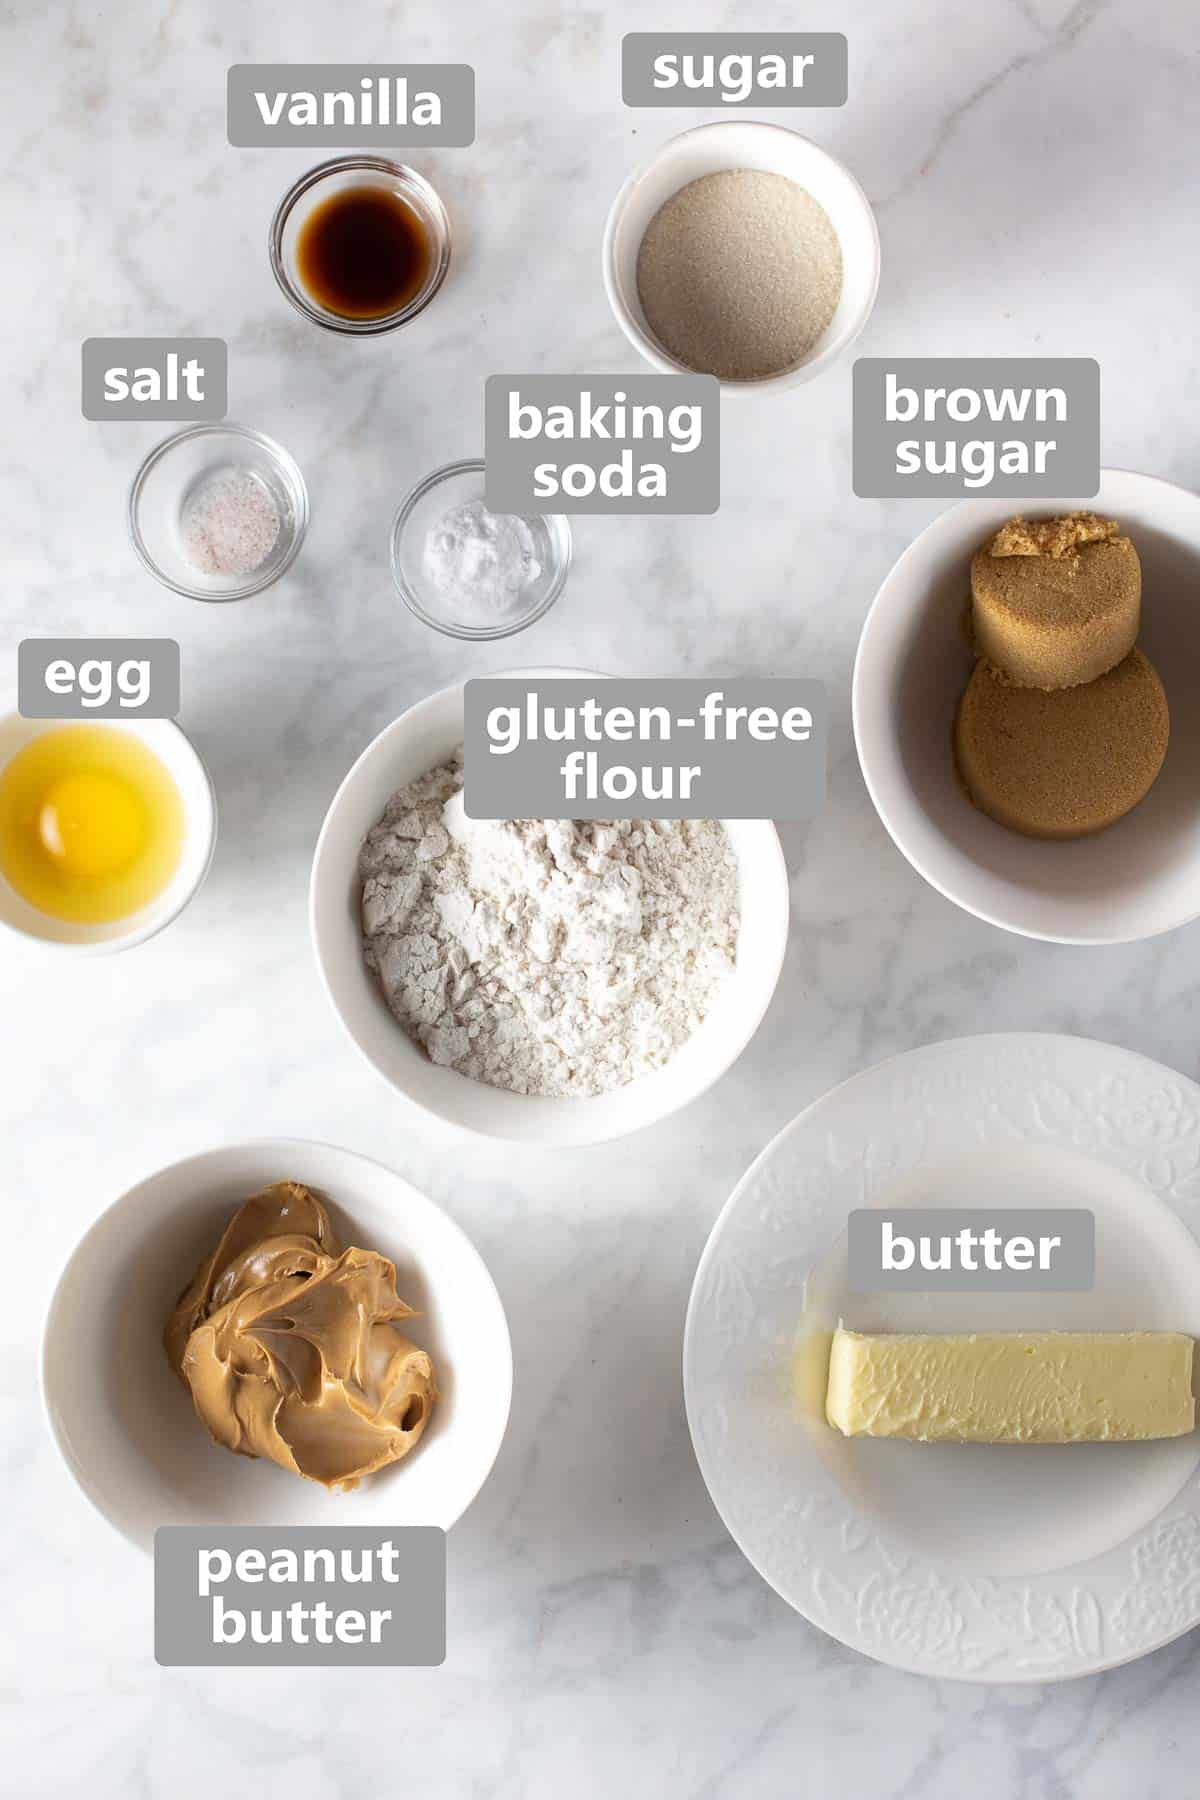 shot of ingredients set out on marble background in bowls to show what is used to make the cookies